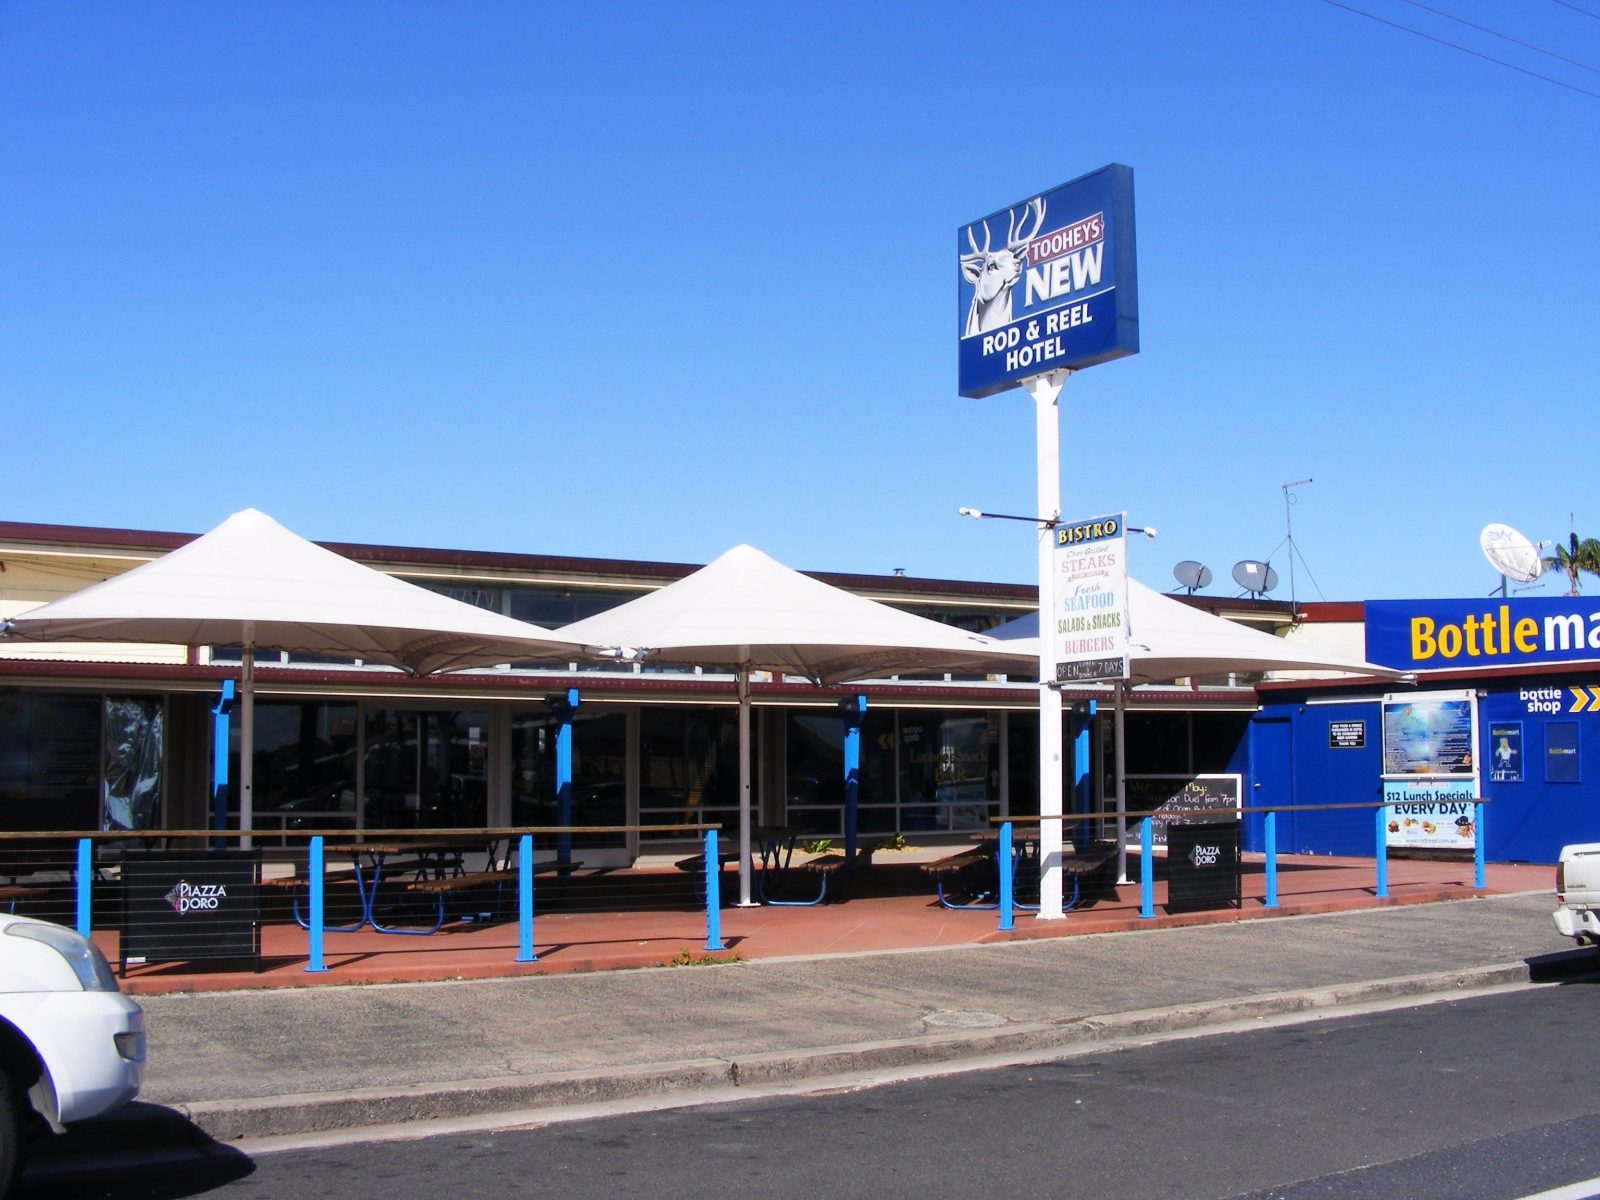 Hotel Frontage and Beer Garden